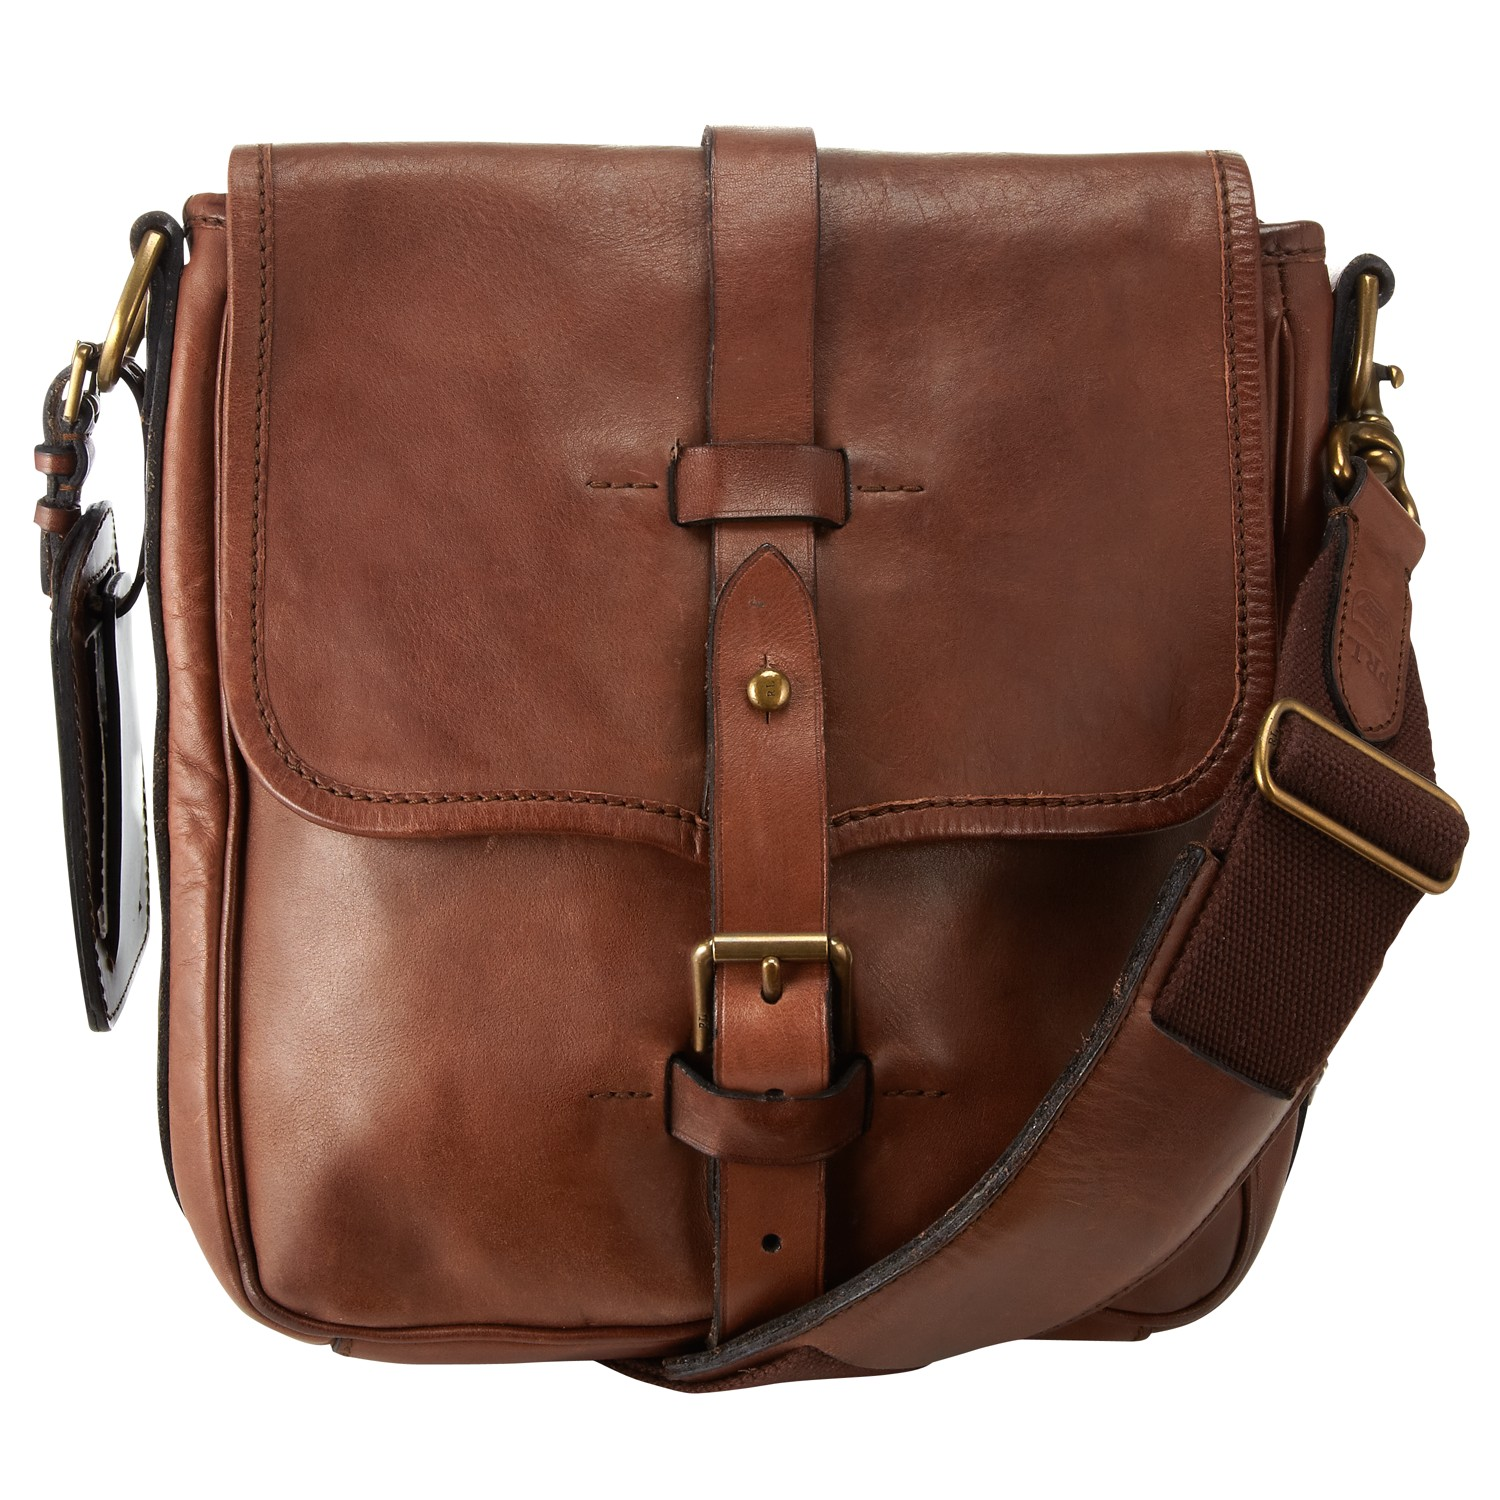 a121f795f2 Polo Ralph Lauren Leather Flight Bag in Brown for Men - Lyst